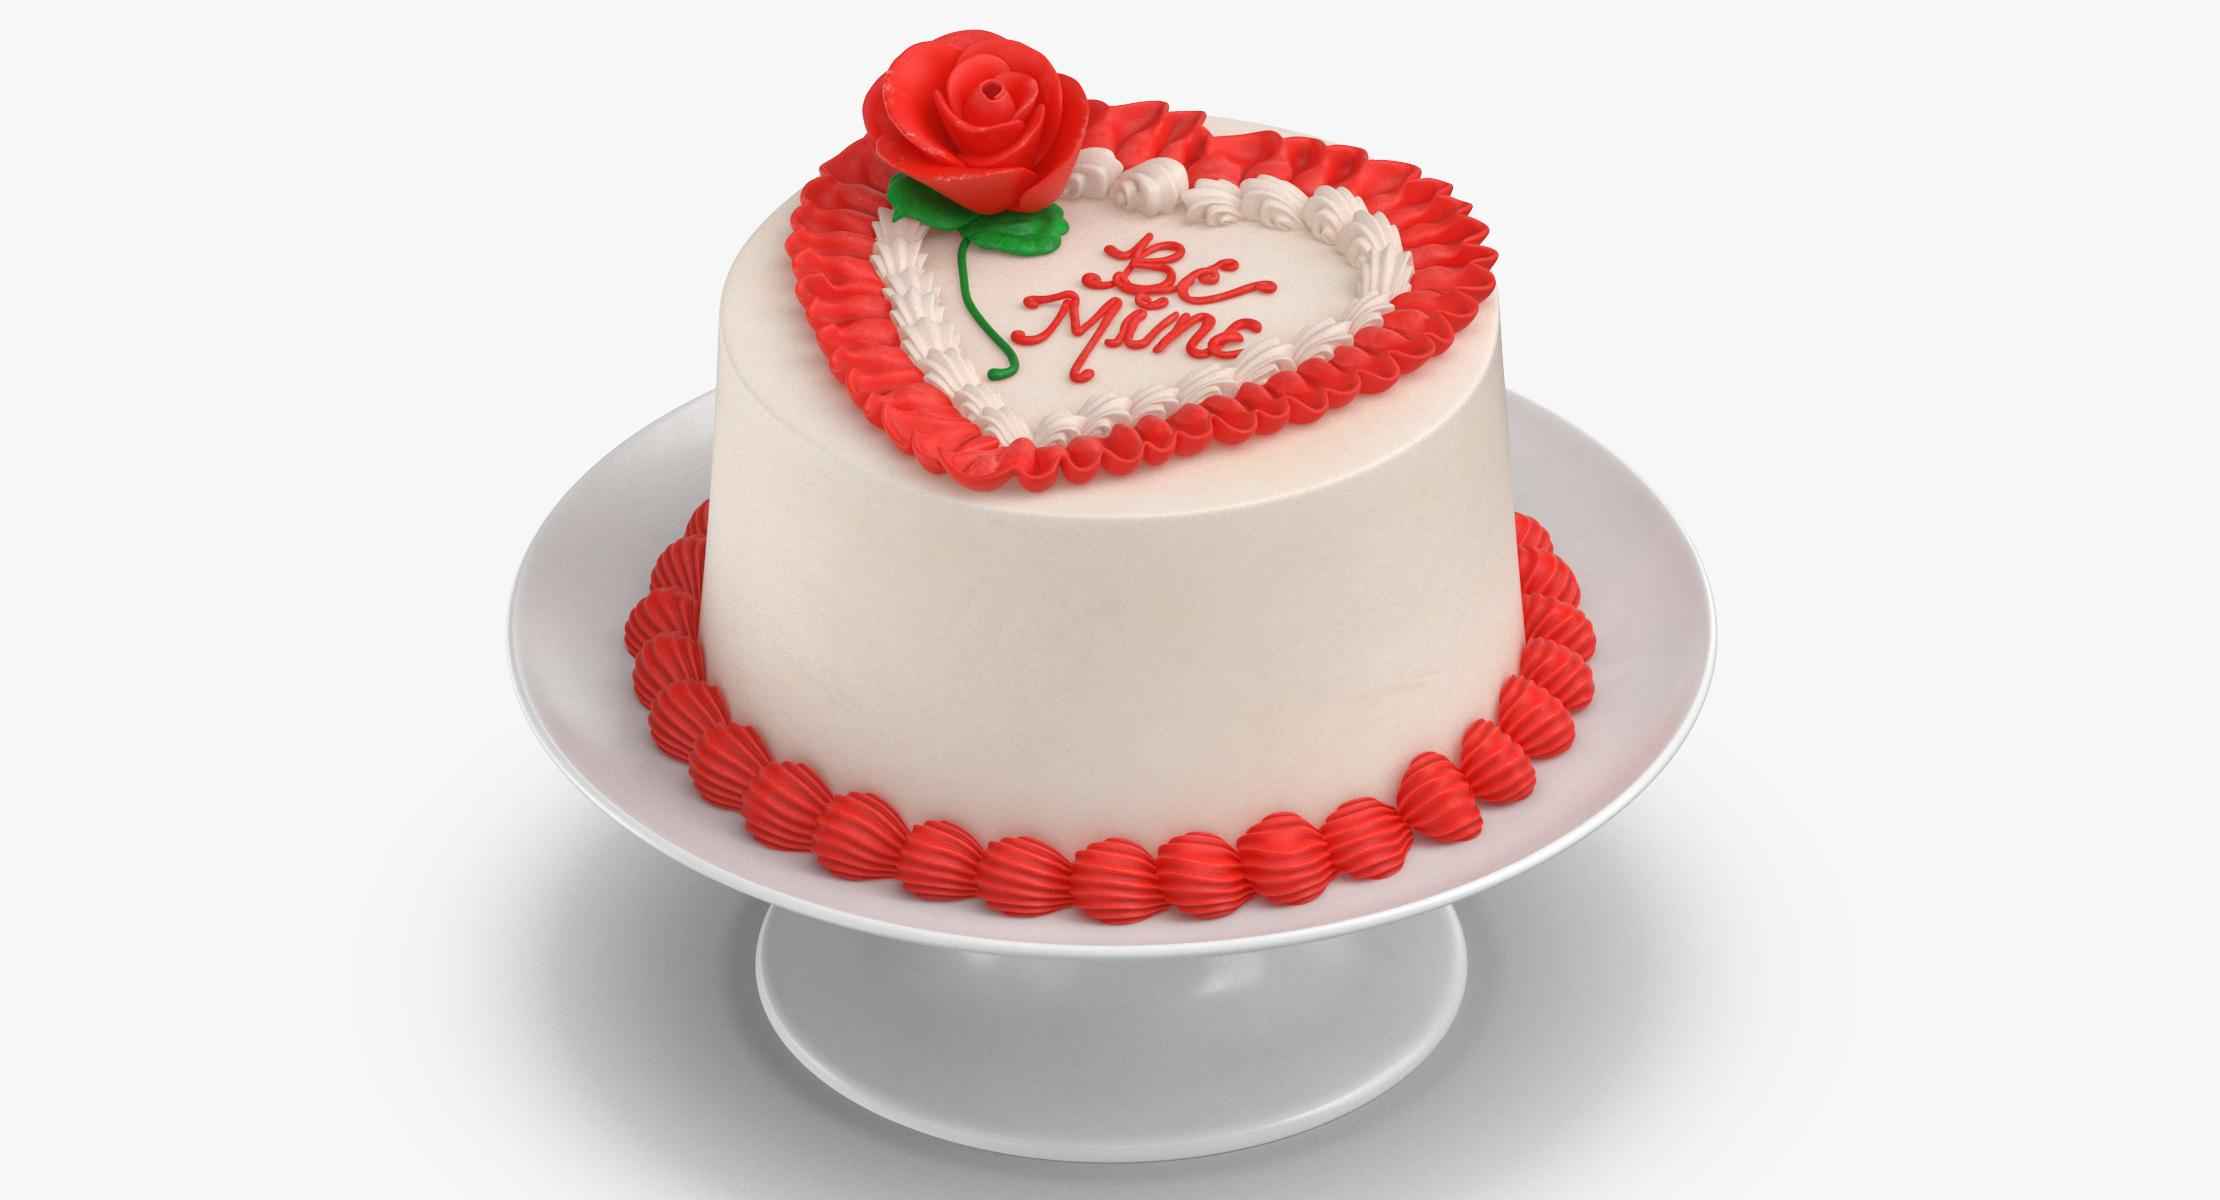 Heart Shaped Cake 01 - reel 1